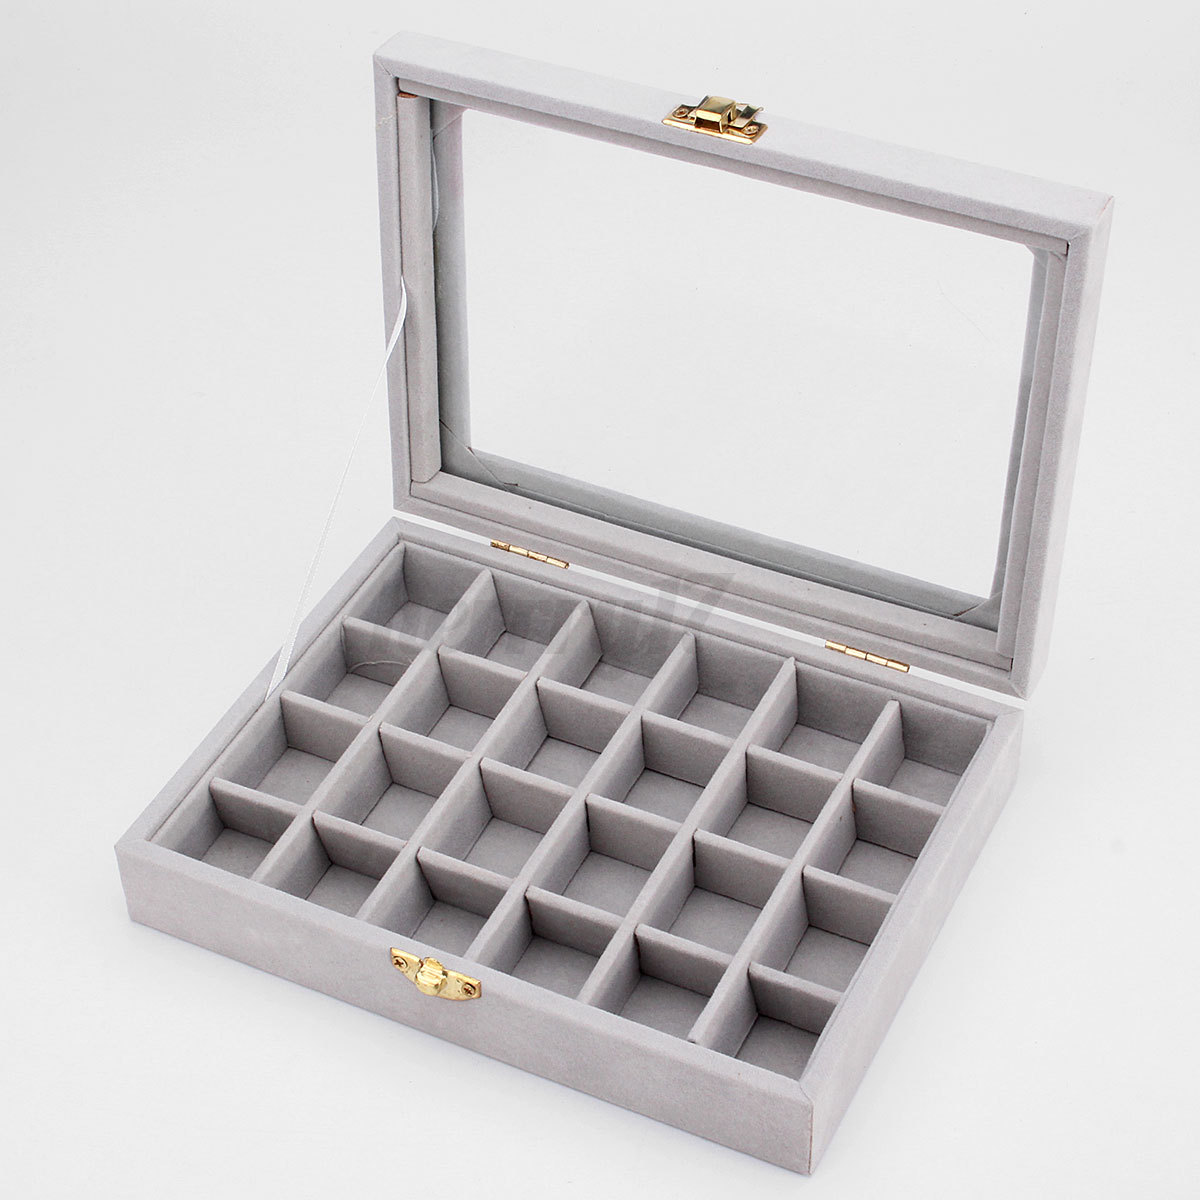 Uk Velvet Ring Display Jewelry Organizer Case Tray